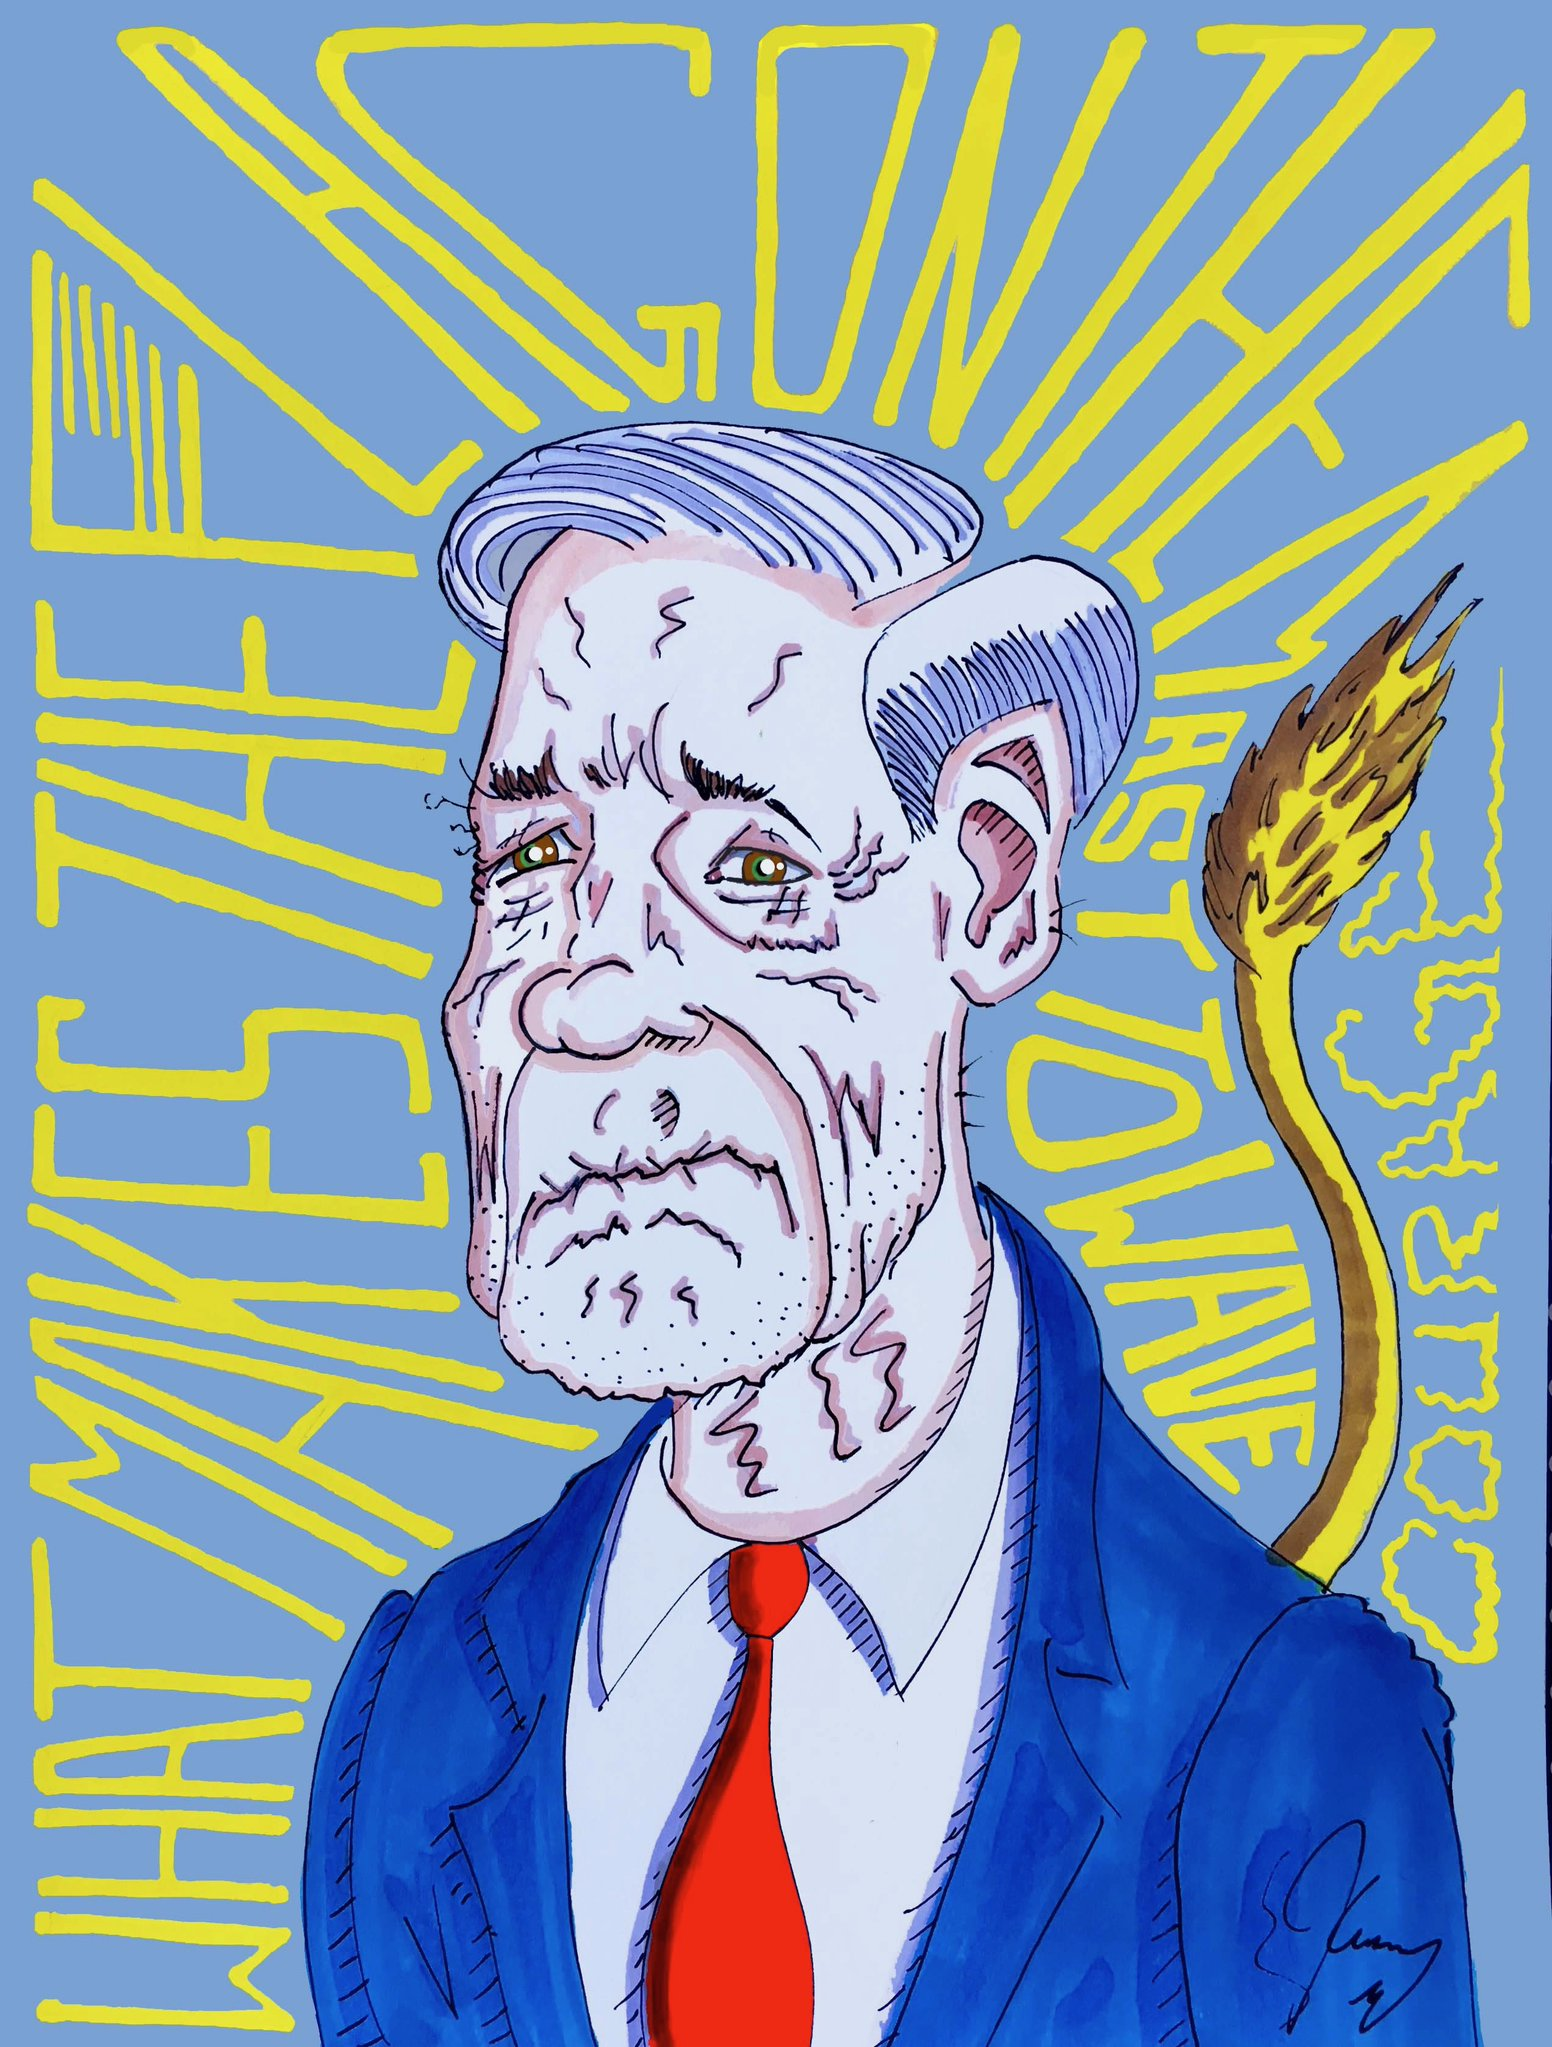 Robert Mueller Spoke Out About the Russia Investigation the Day After Jim Carrey Urged Him With This Drawing. Coincidence? We Think Not!